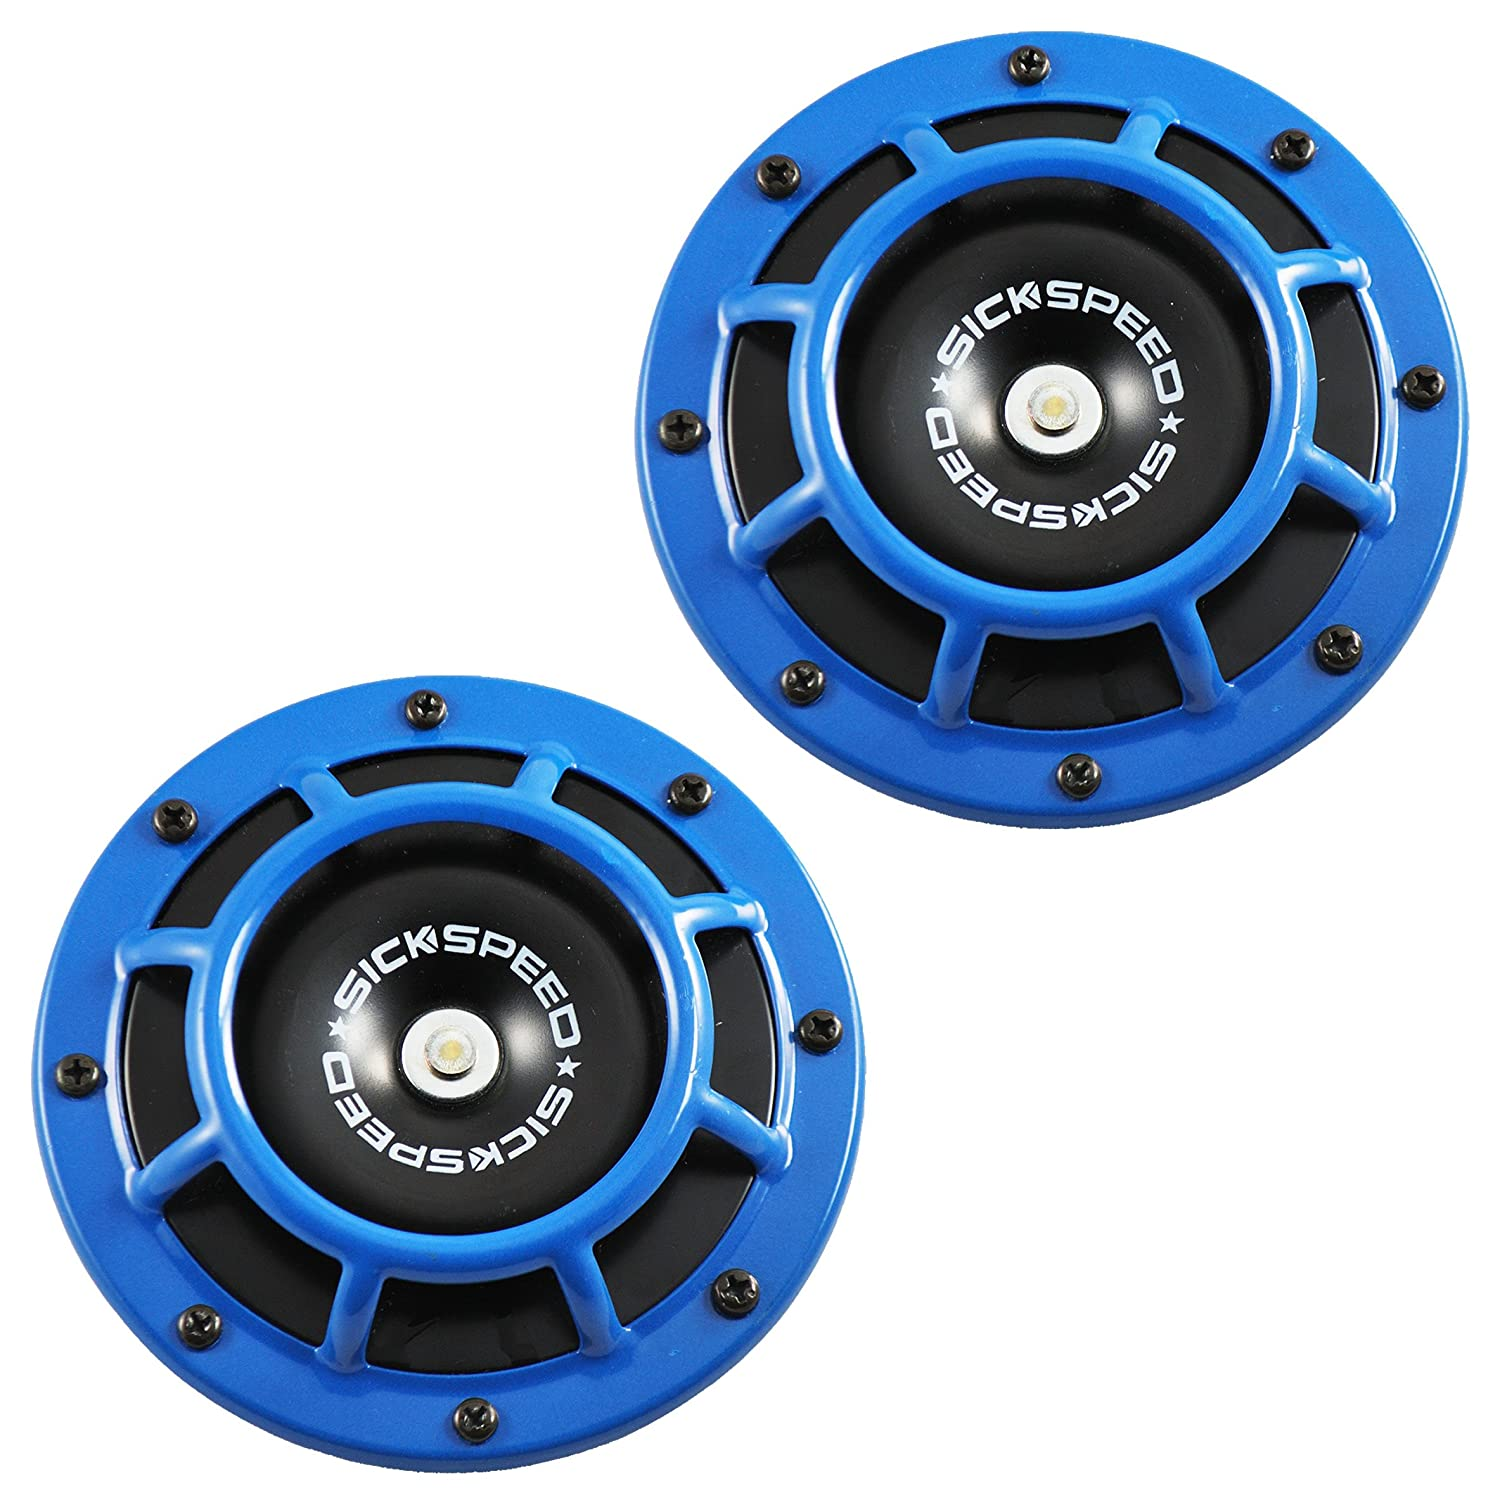 Sickspeed 2Pc Blue Super Loud Compact Electric Blast Tone Horn for Car//Truck//SUV 12V P4 for Chrysler Town /& Country